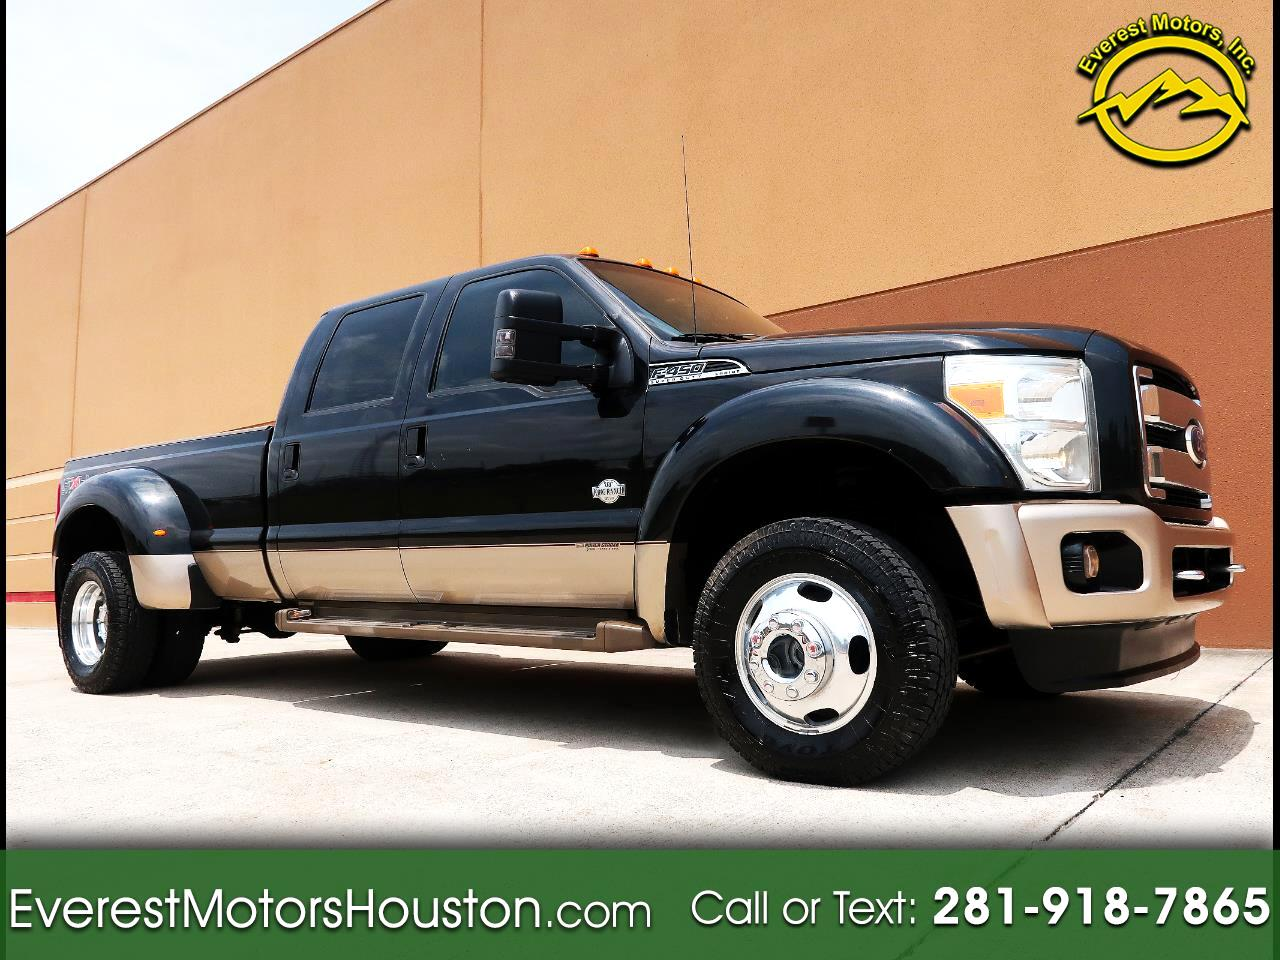 2011 Ford F-450 SD KING RANCH CREW CAB LONG BED 4WD LOADED NAV CAM